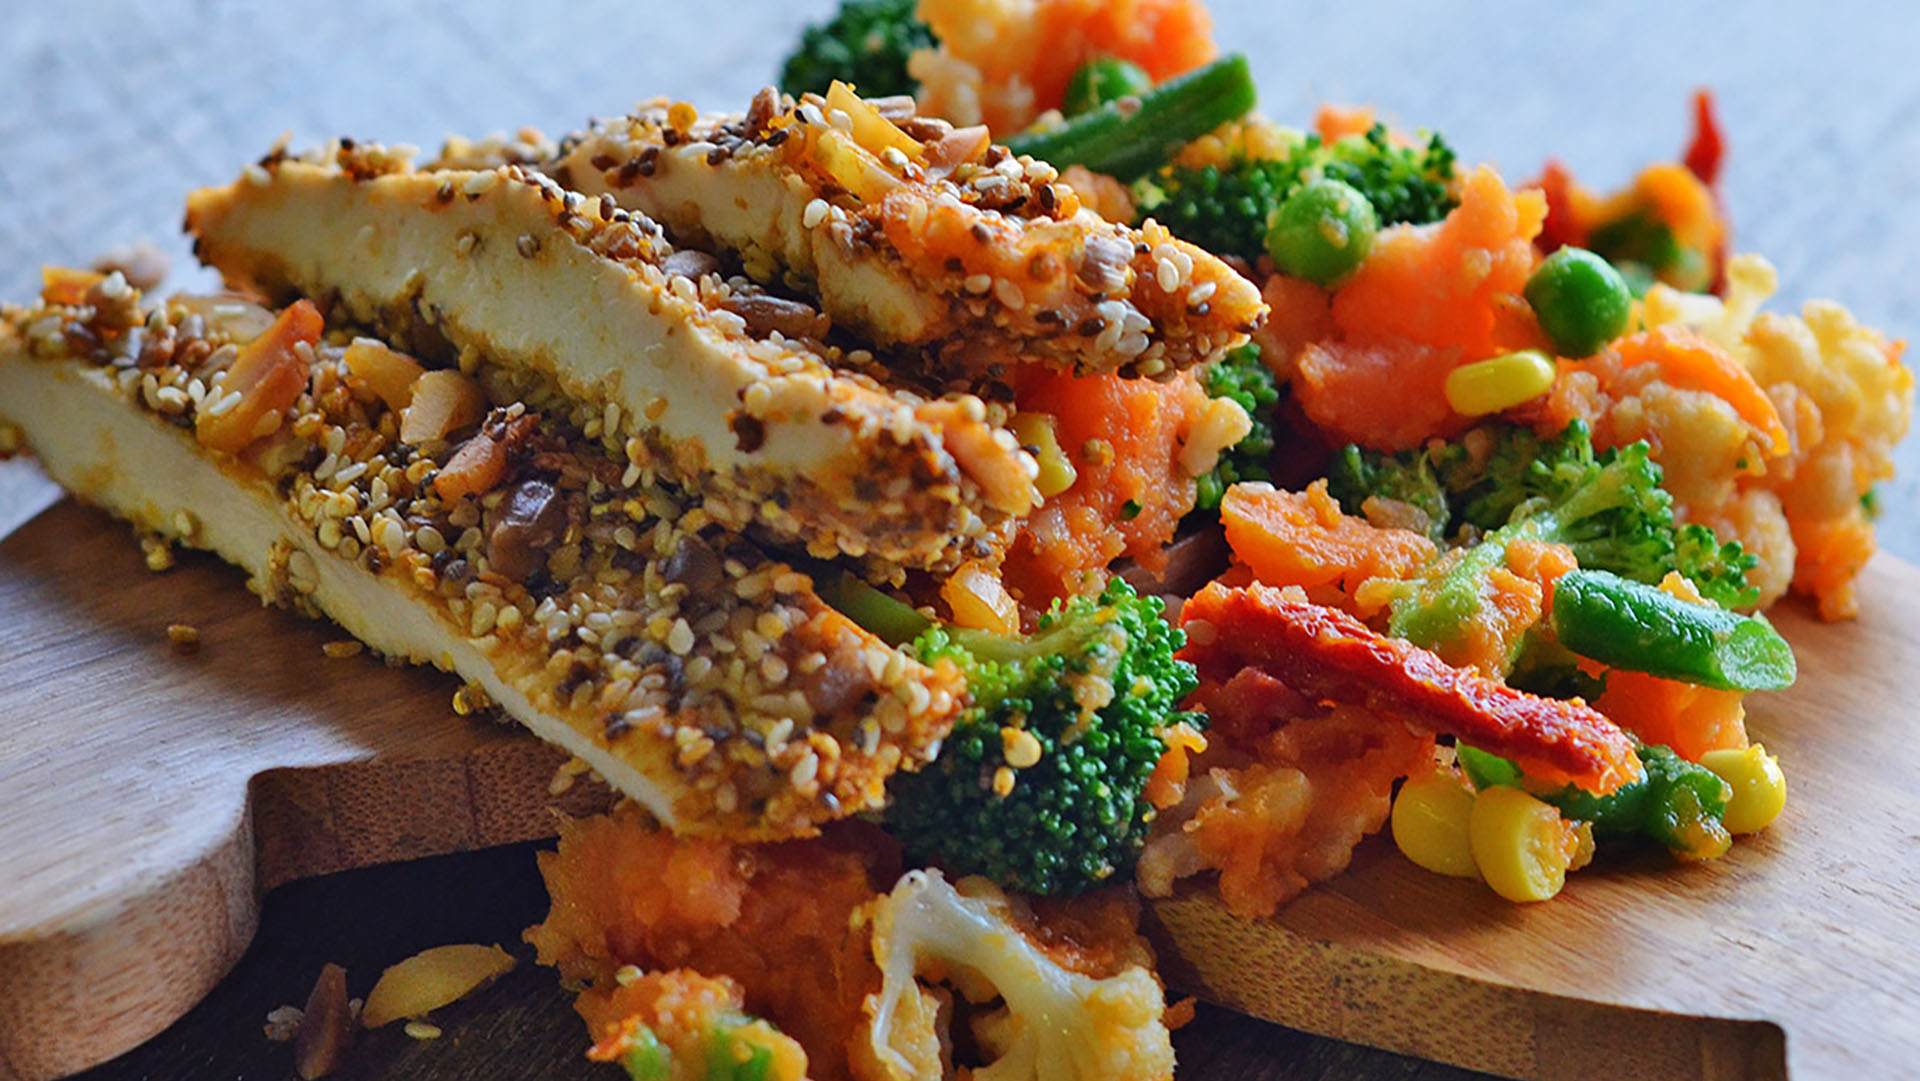 Chia-Crusted-Chicken-&-Veg-Smash1